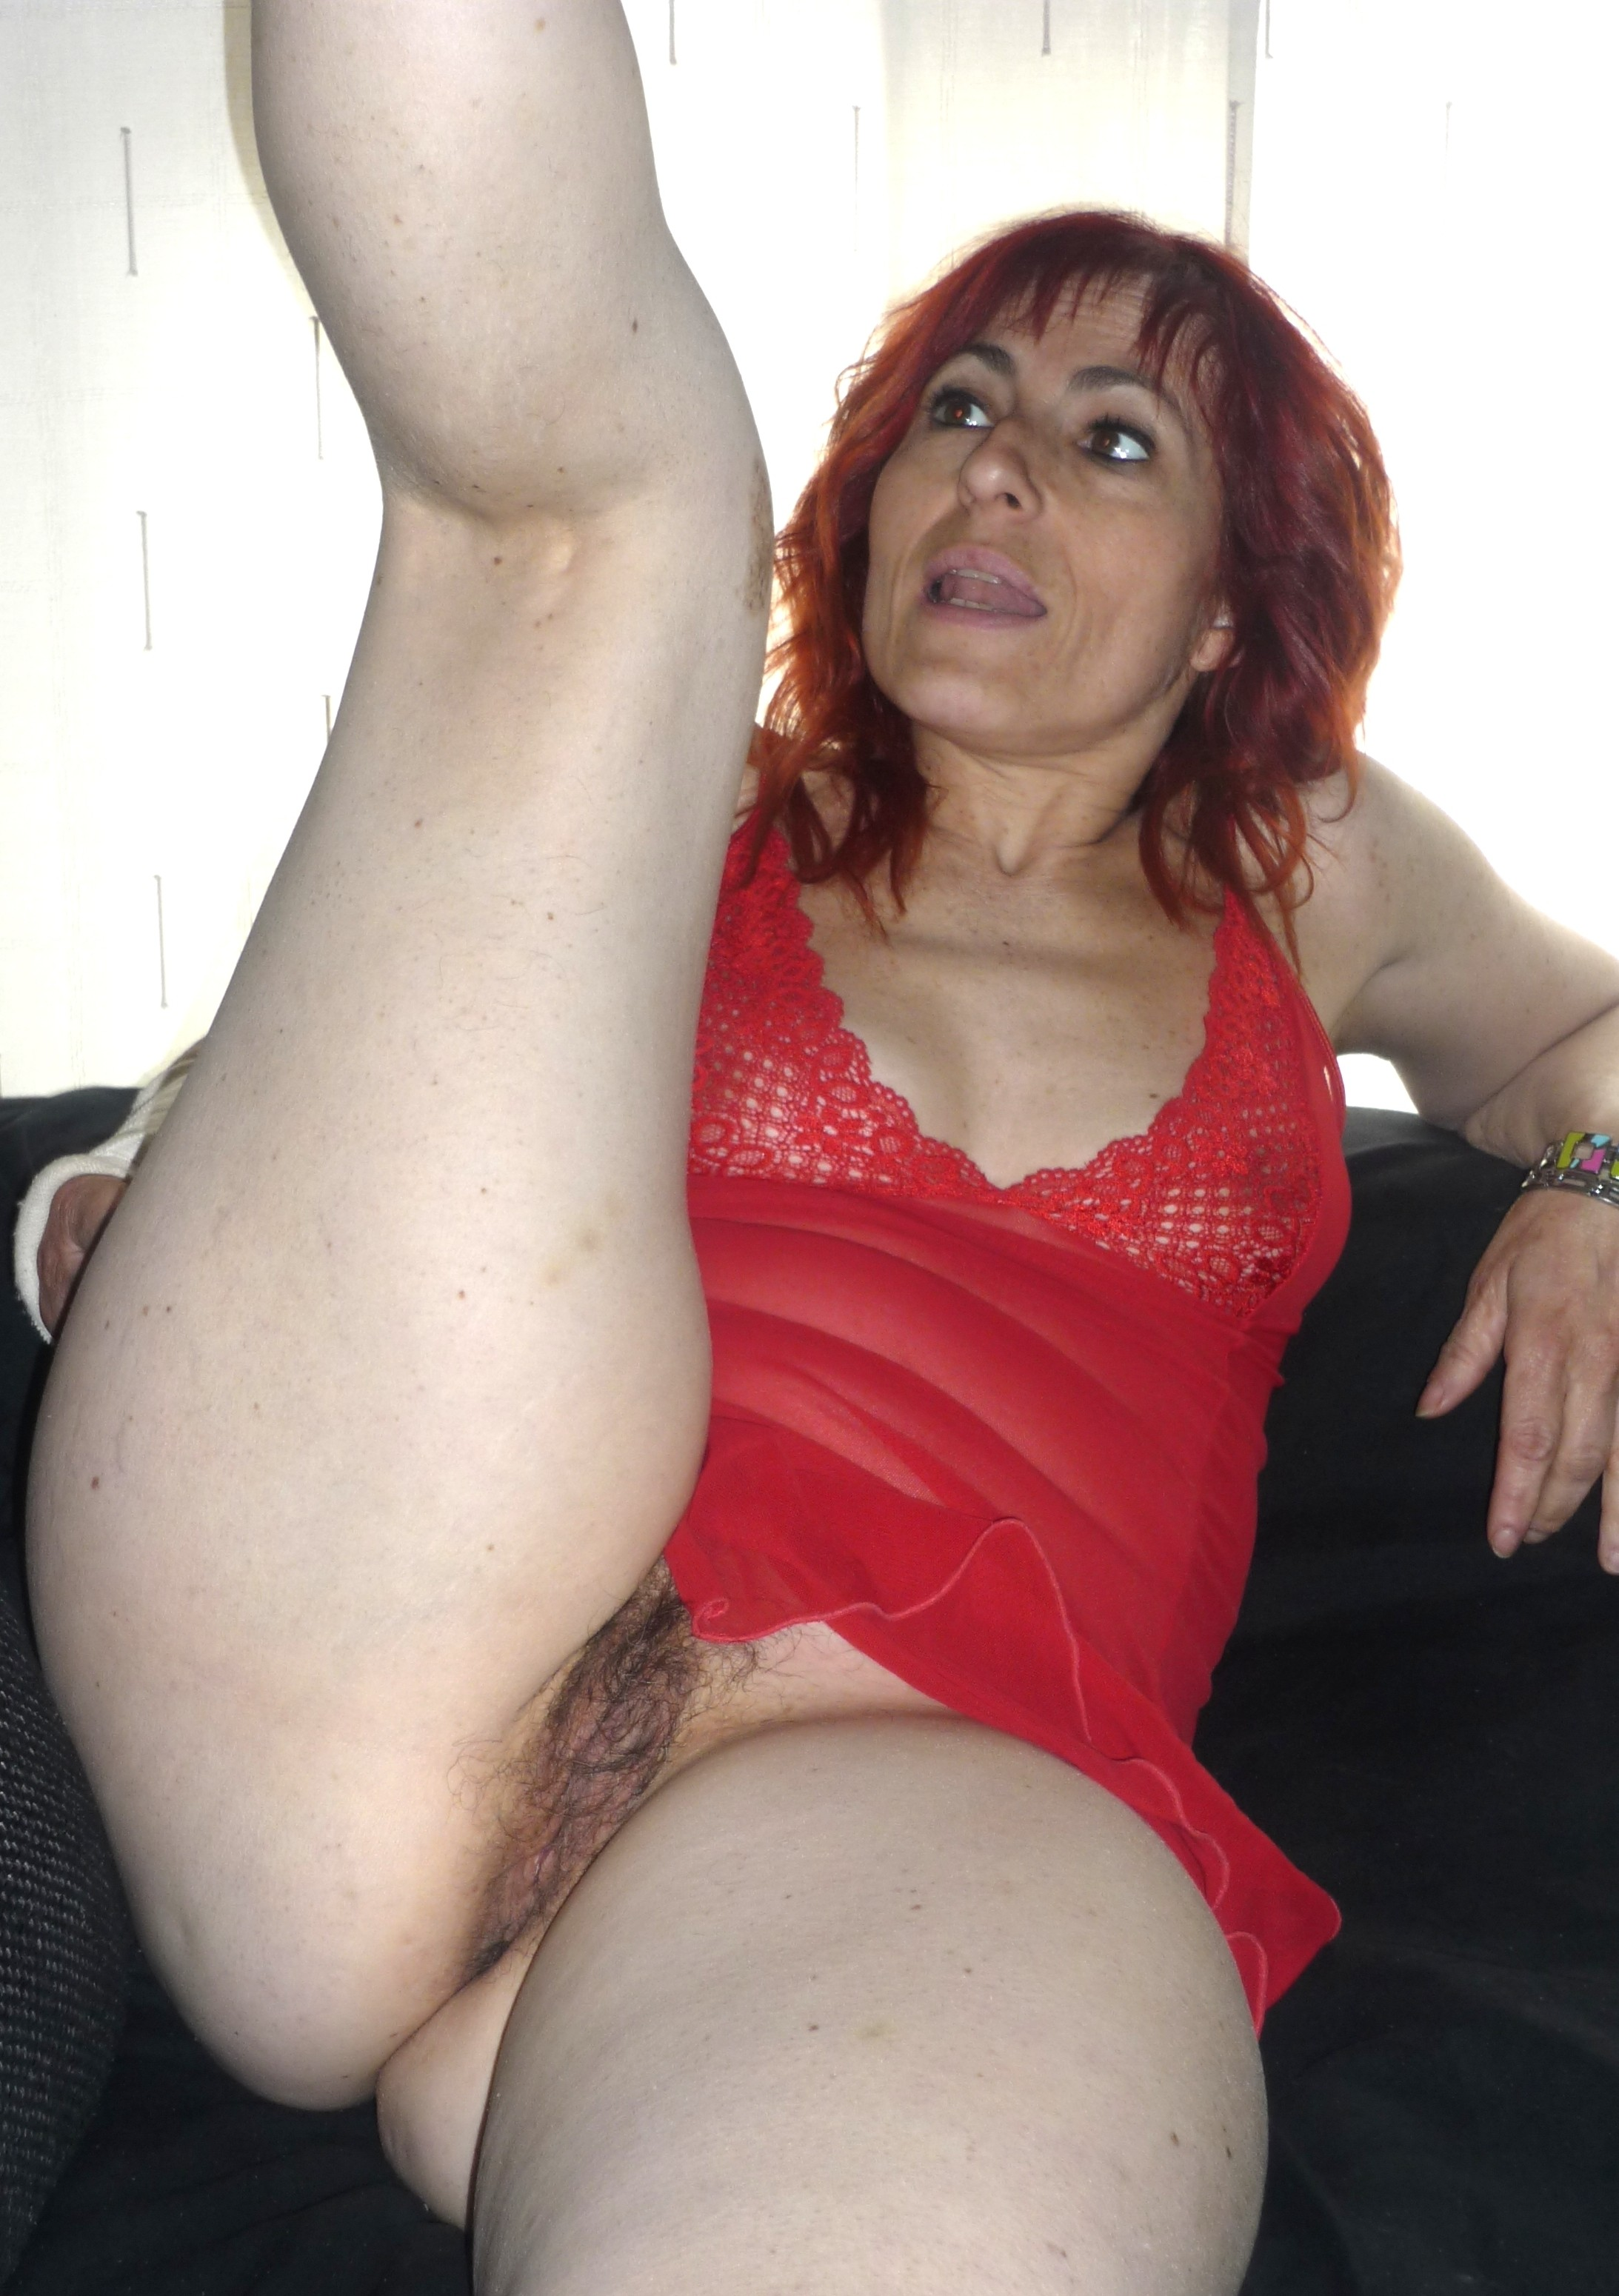 Free mature redheads porn galleries also not